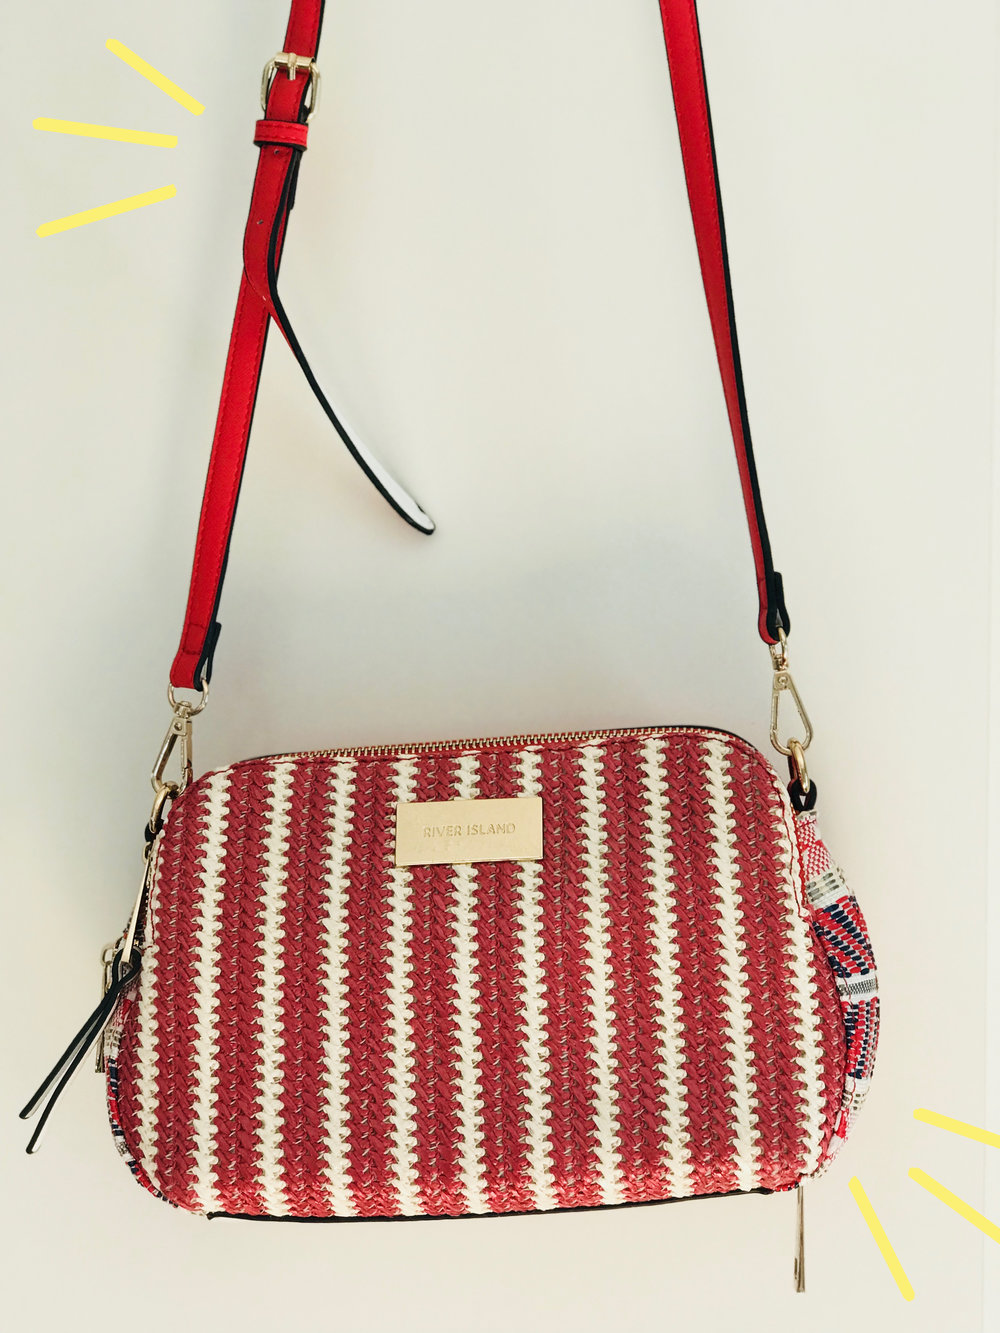 River Island red and white stripe bag | My Current Fave High Street Bags!